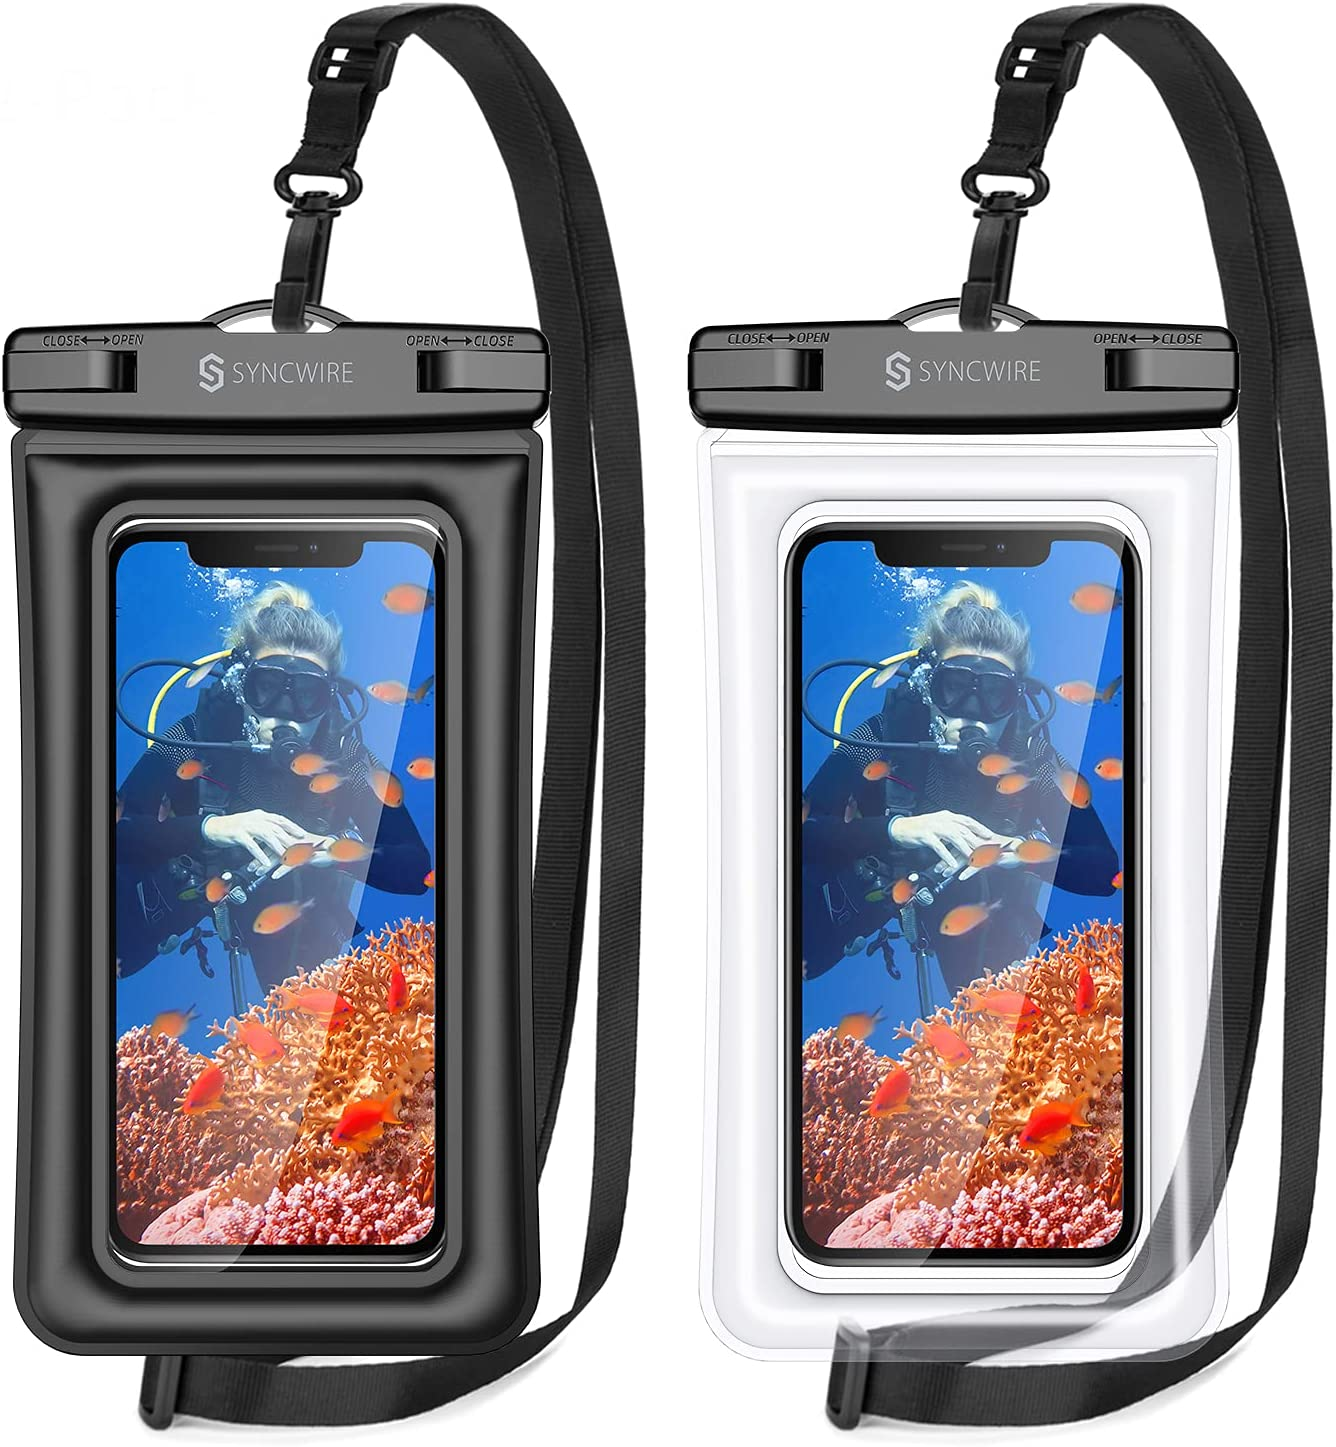 Syncwire Waterproof Phone Case, 2 Pack IPX8 Universal Waterproof Phone Pouch Underwater Dry Bag Compatible with iPhone 12 SE2 11 Pro XS Max XR X 8 7 6s Plus Galaxy S10 S9 Note 10 Google Pixel Up to 7